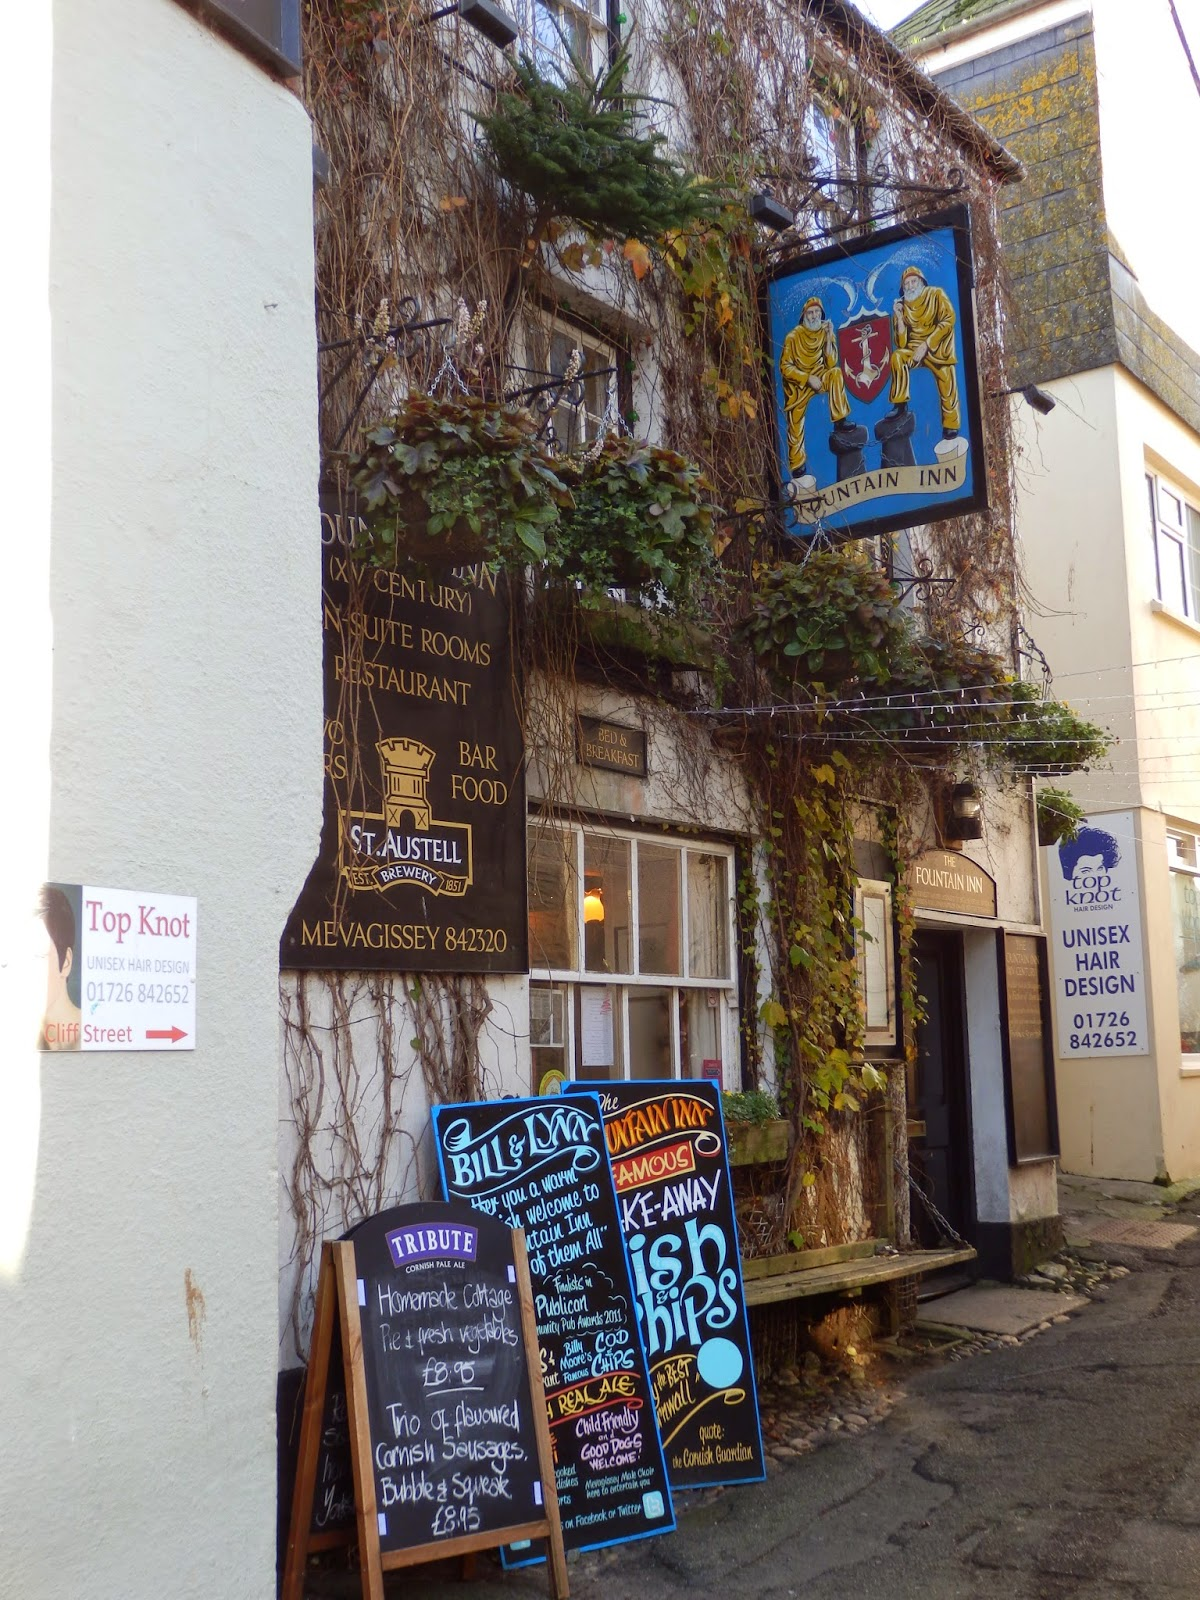 Fountain Inn Mevagissey